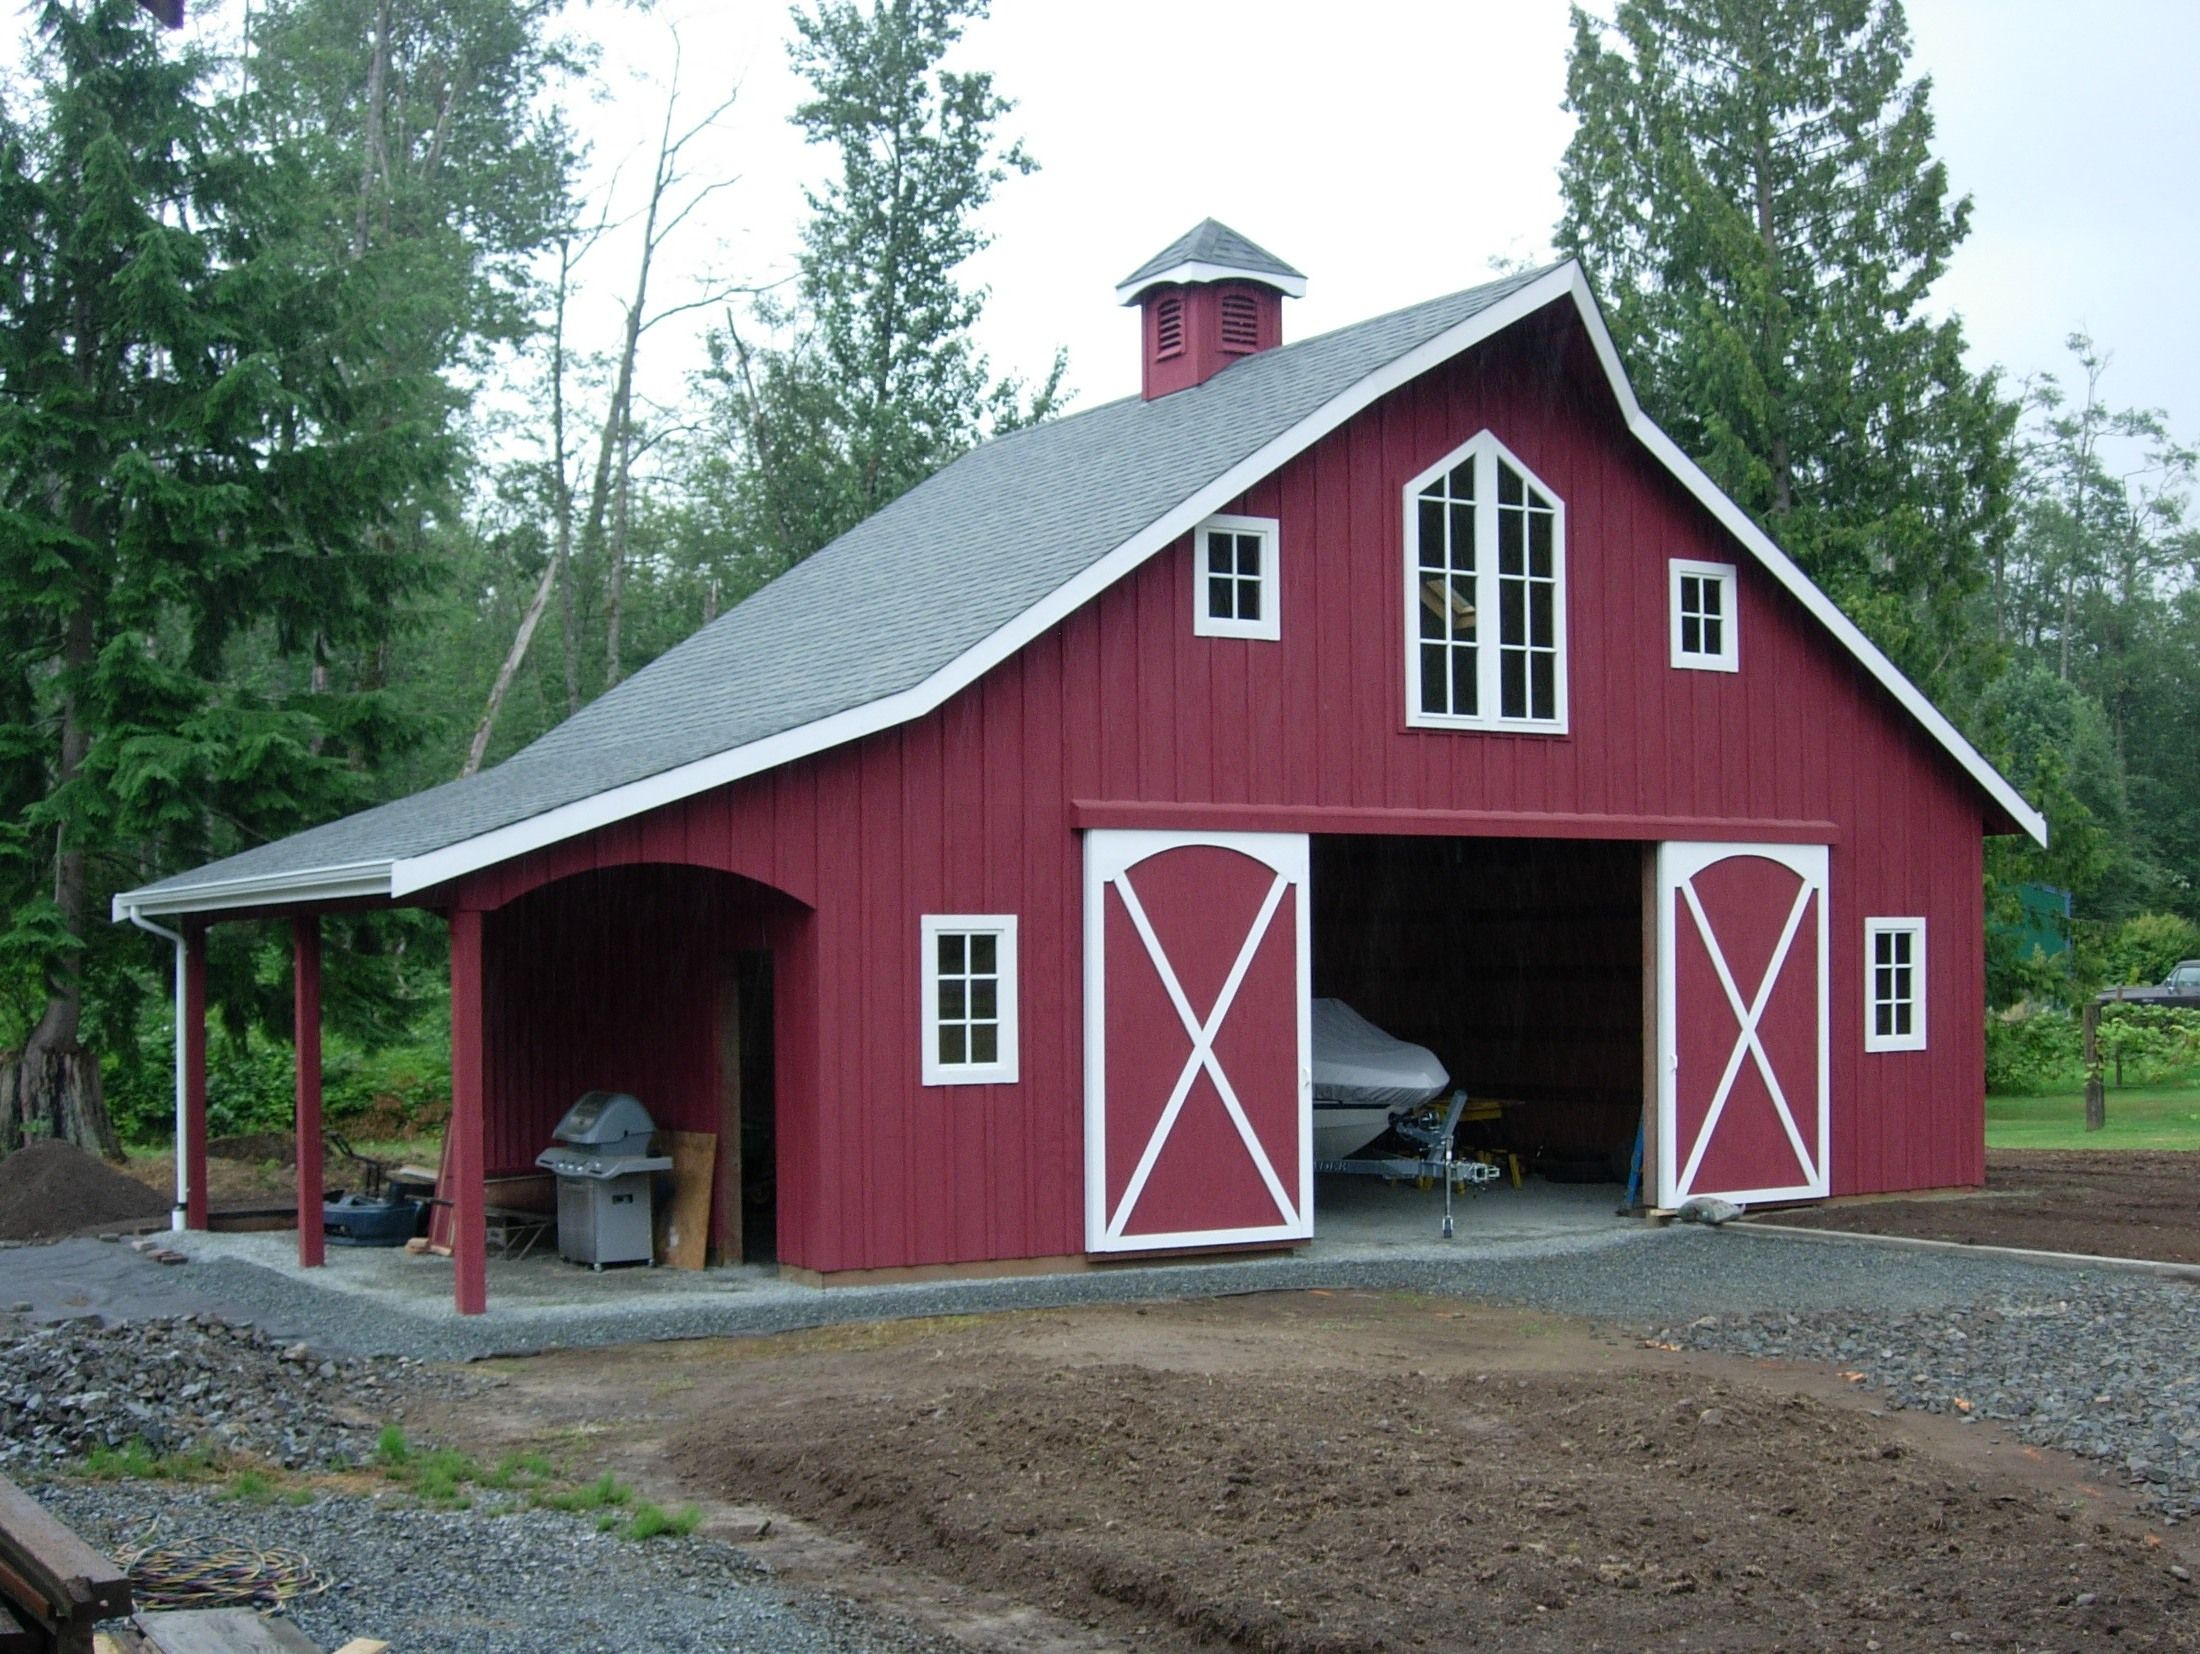 barn design more horses need a parallel stall arrangement - Horse Barn Design Ideas